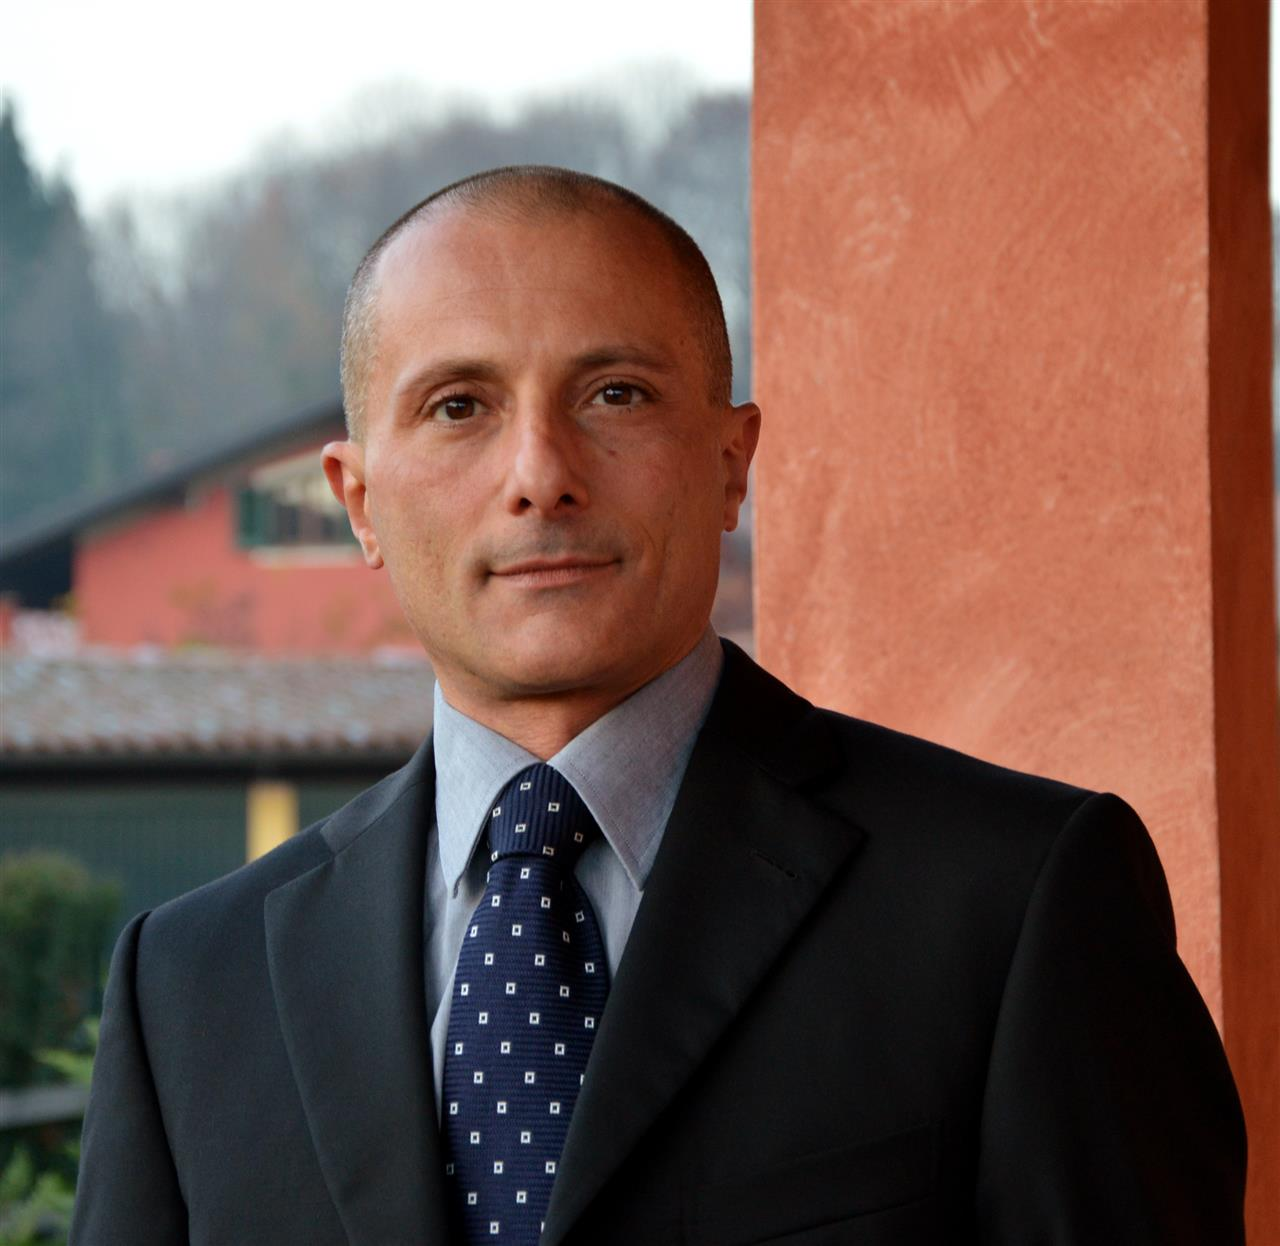 Massimiliano Mercurio